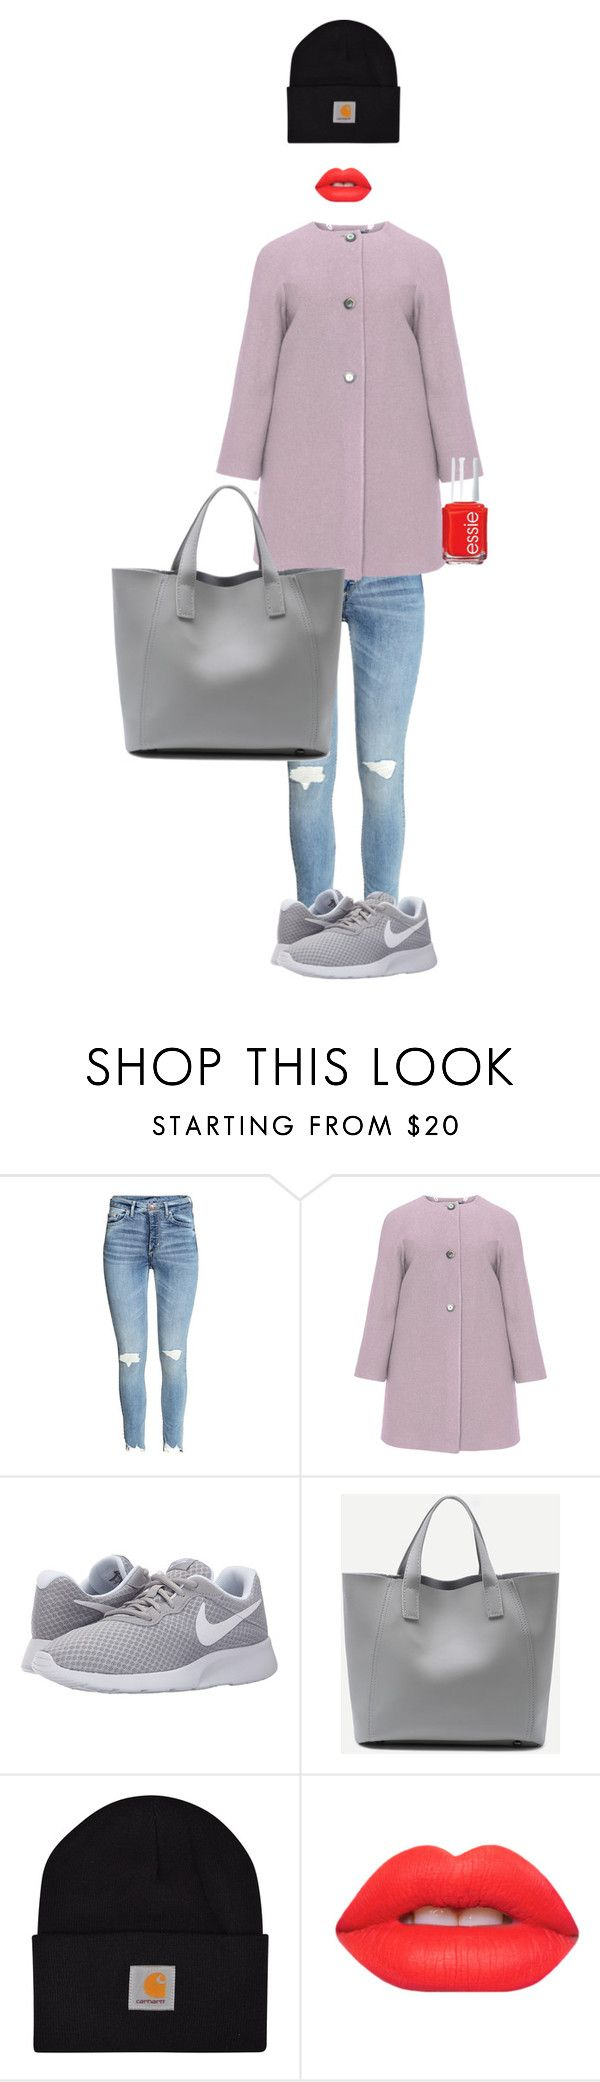 winter #1 by meanixee on Polyvore featuring navabi, NIKE, Carhartt, Lime Crime and Essie